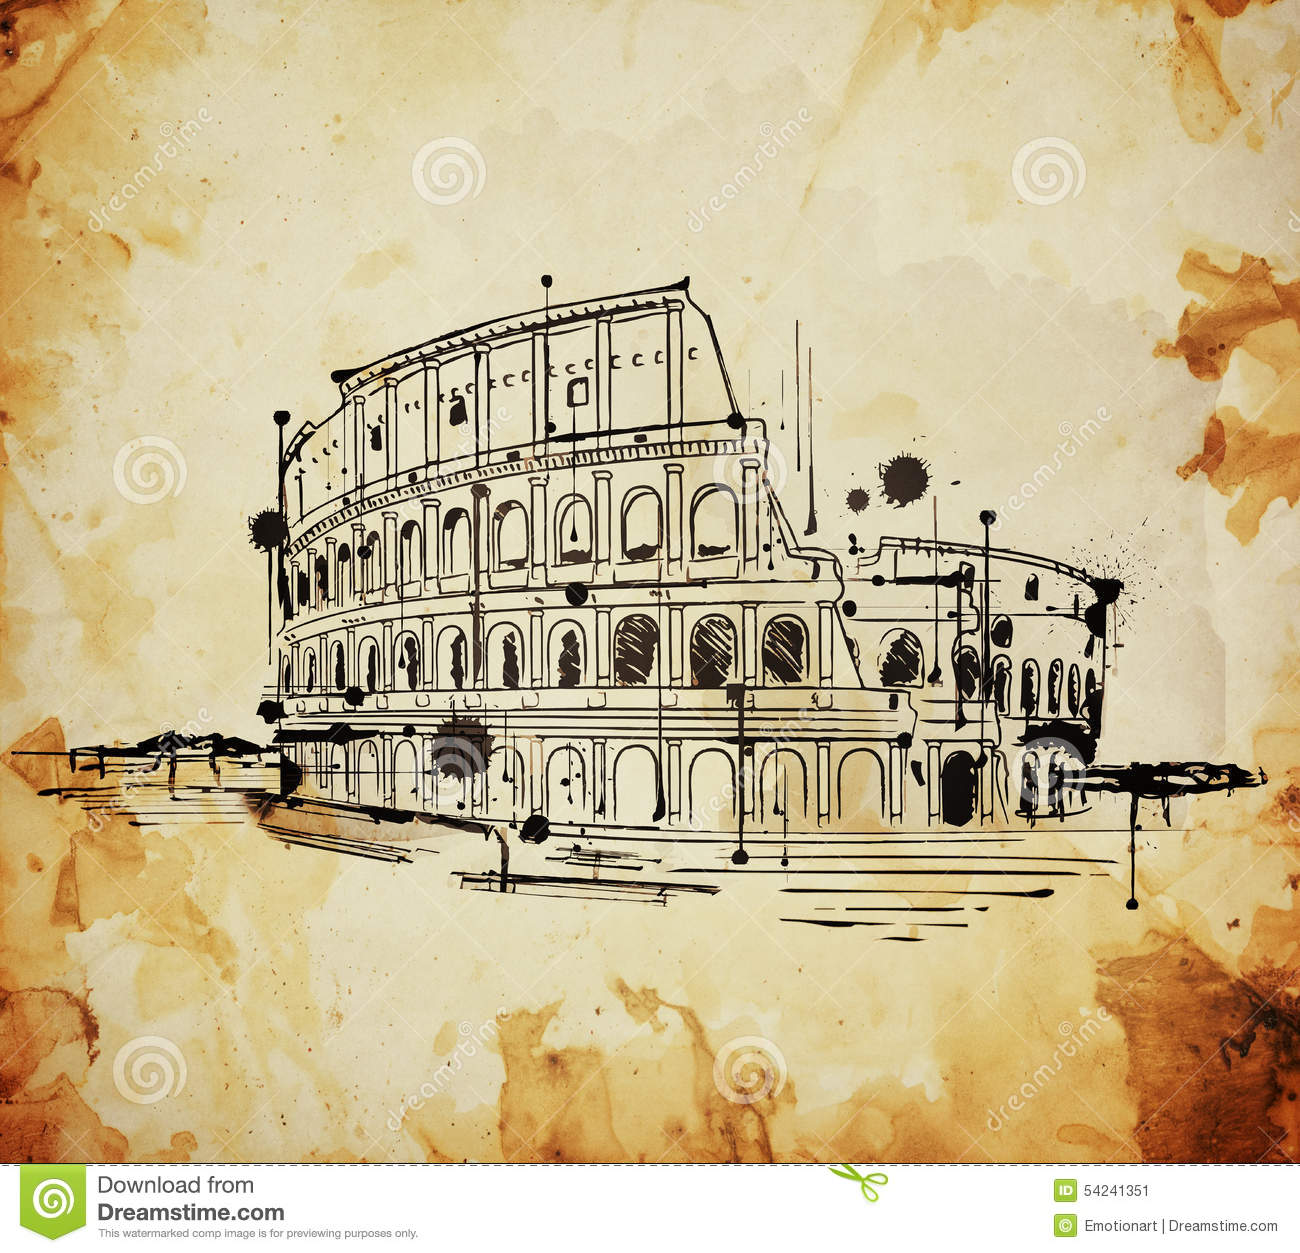 Colosseum, Rome, Italy Vintage Sketch Stock Illustration - Image: 54241351